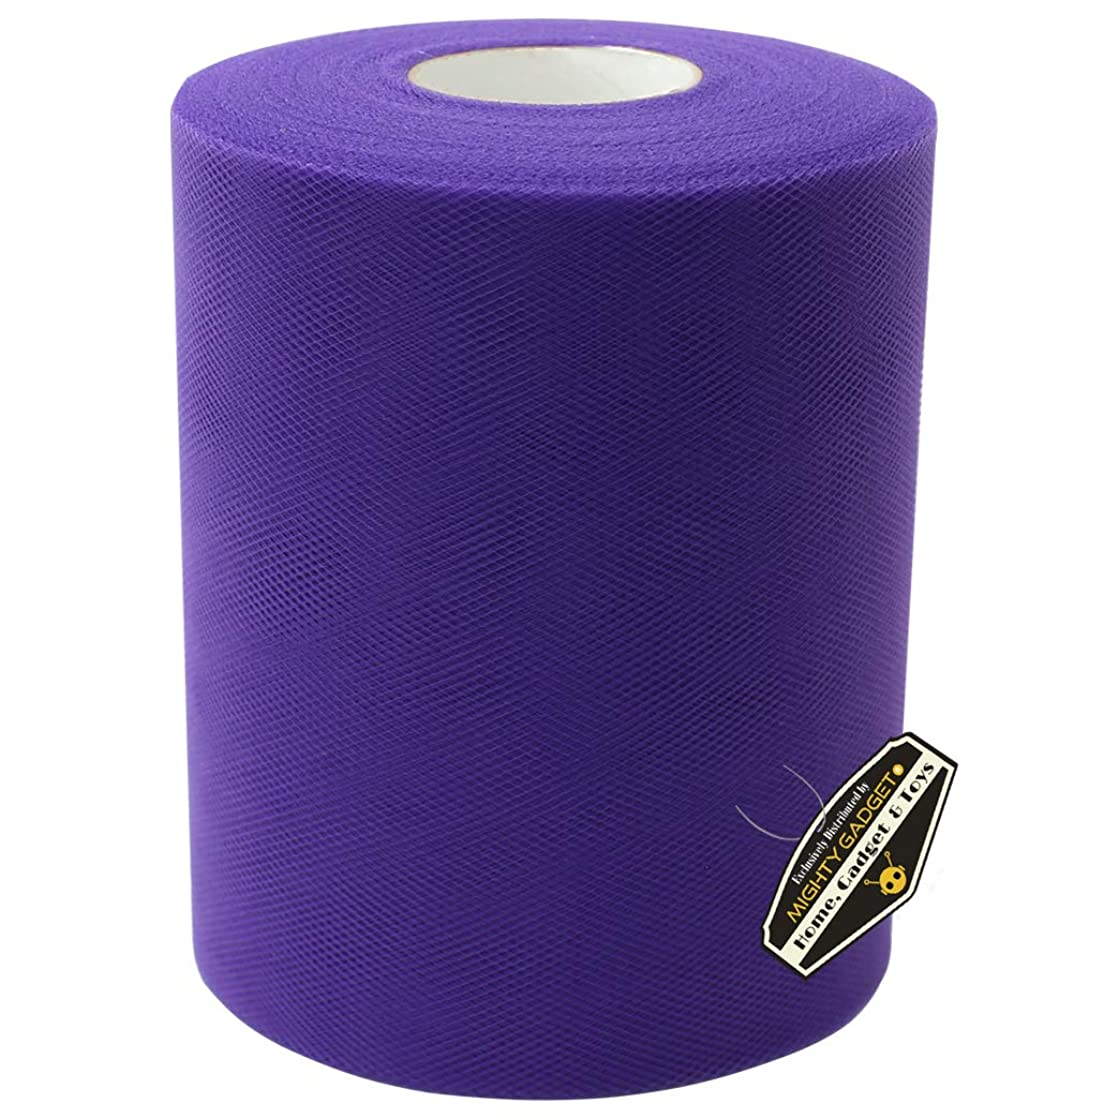 Mighty Gadget Brand Large Tulle Fabric Spool 6 inch x 100 Yards (300 feet) for Wedding and Decoration (Purple)